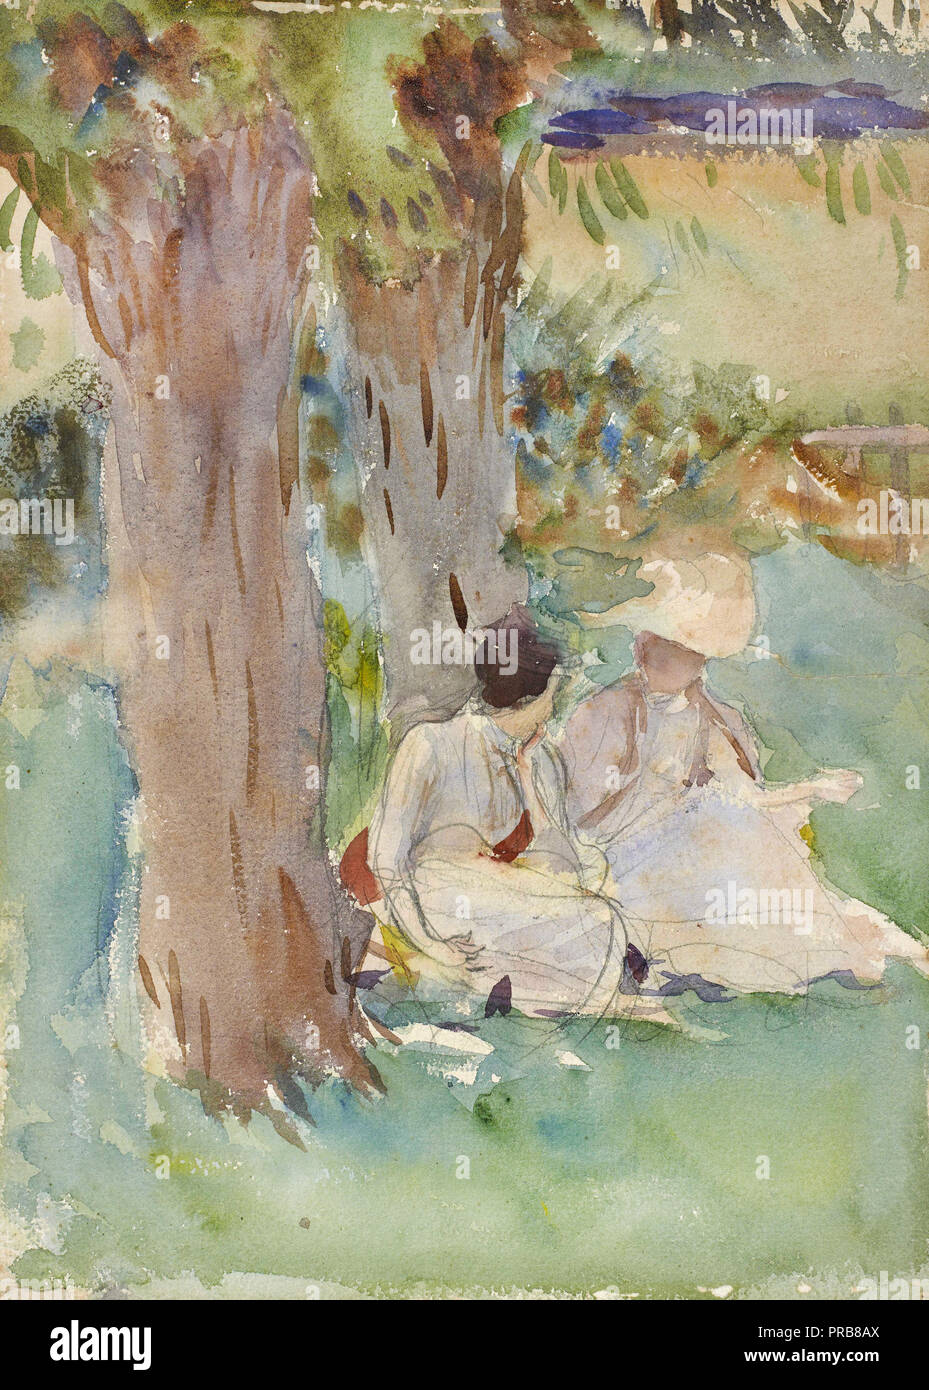 John Singer Sargent, Under the Willows 1888 Watercolor, Museum of Fine Arts, Houston, USA. Stock Photo